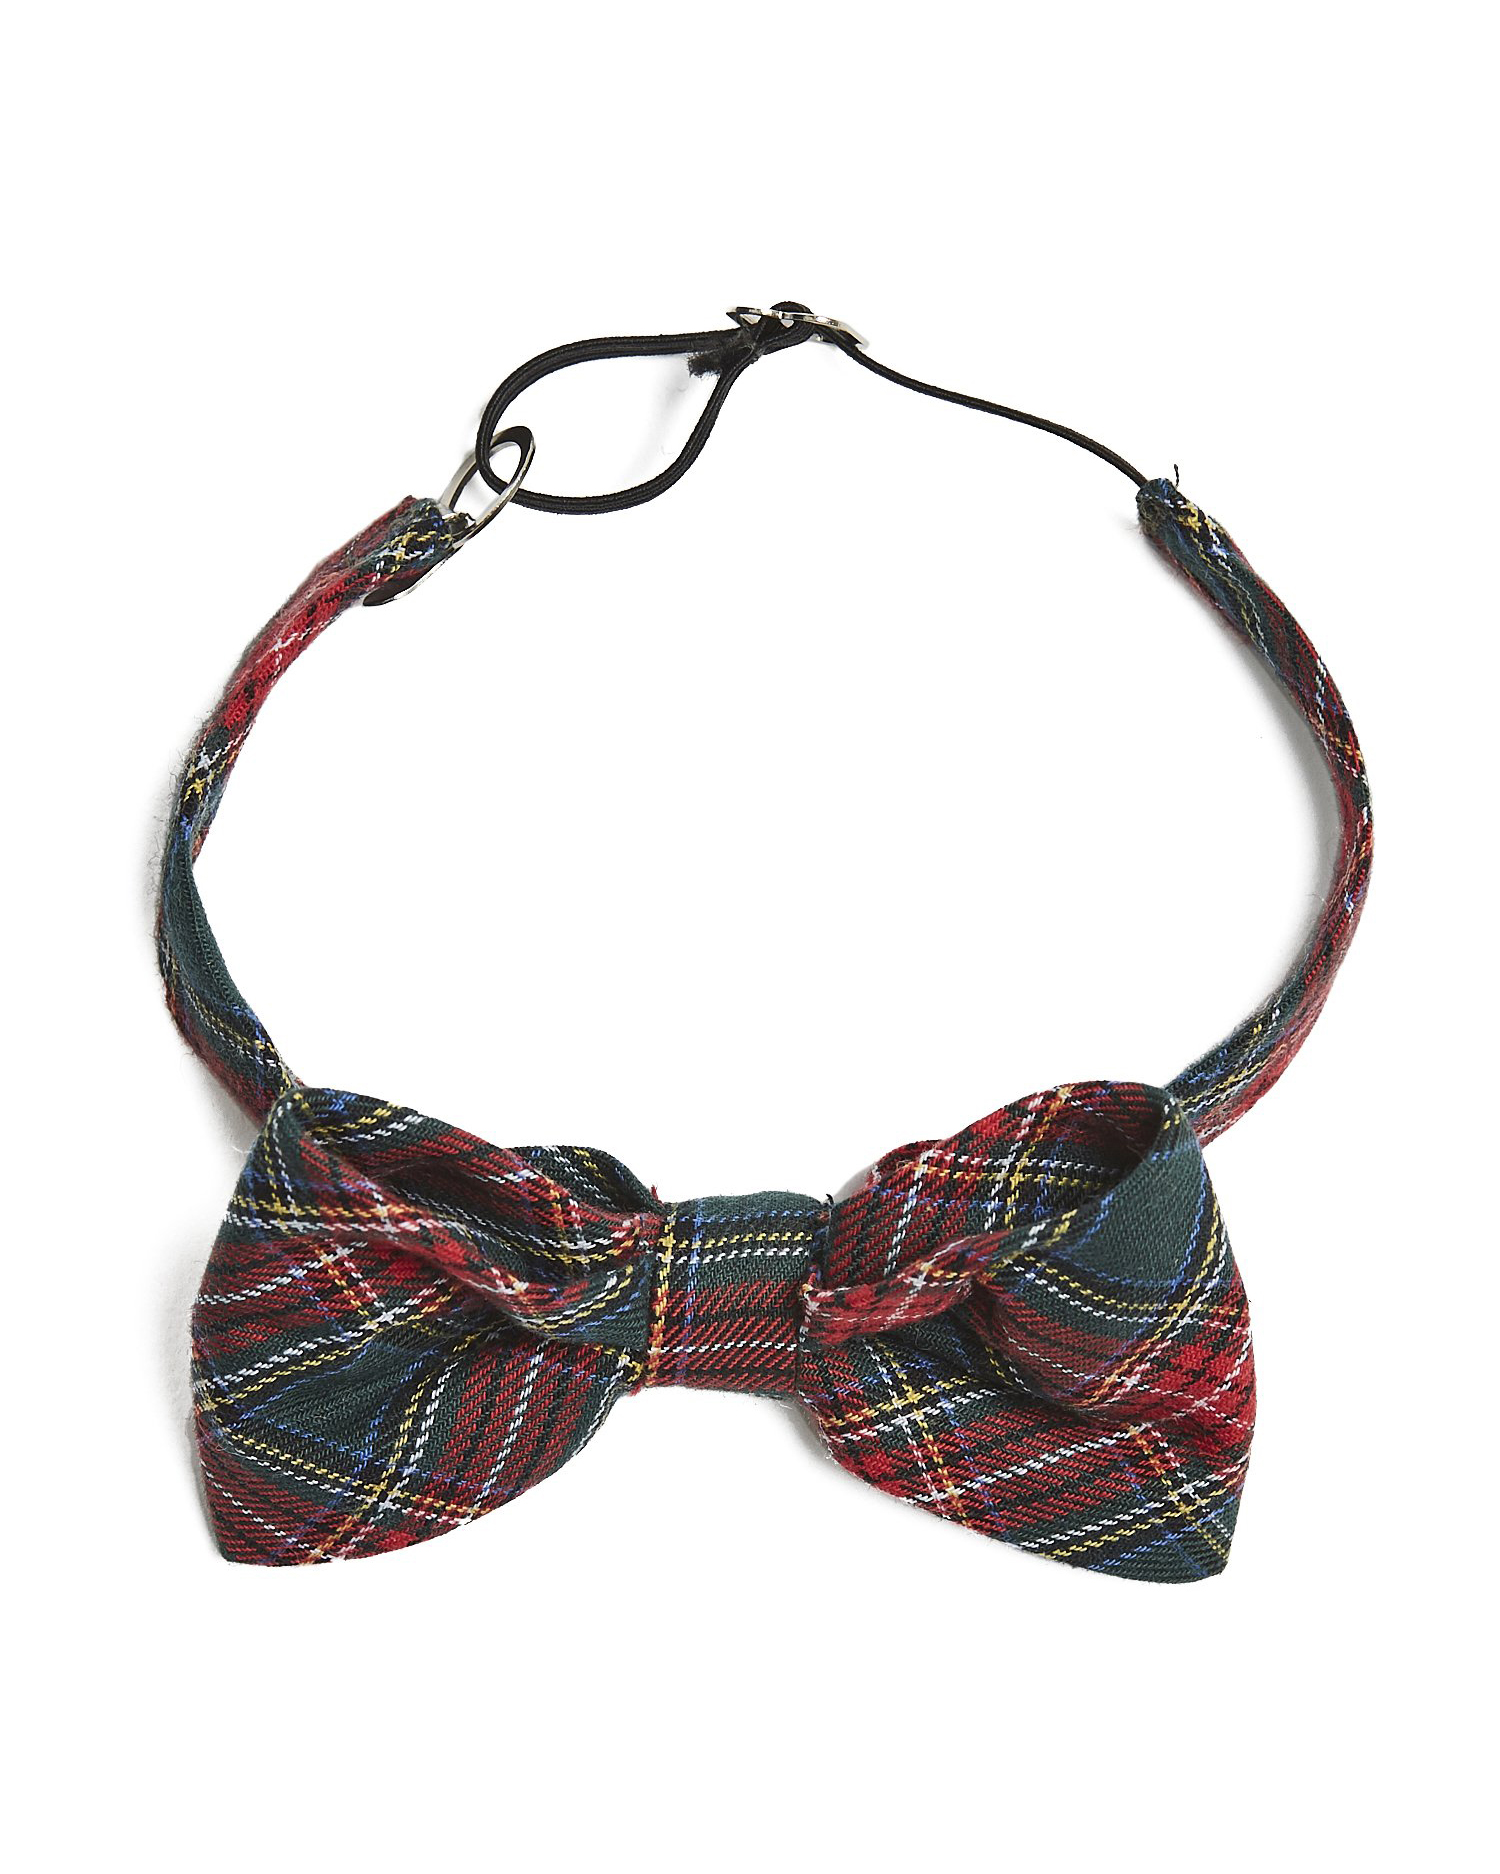 ring bearer red green autumn bow tie